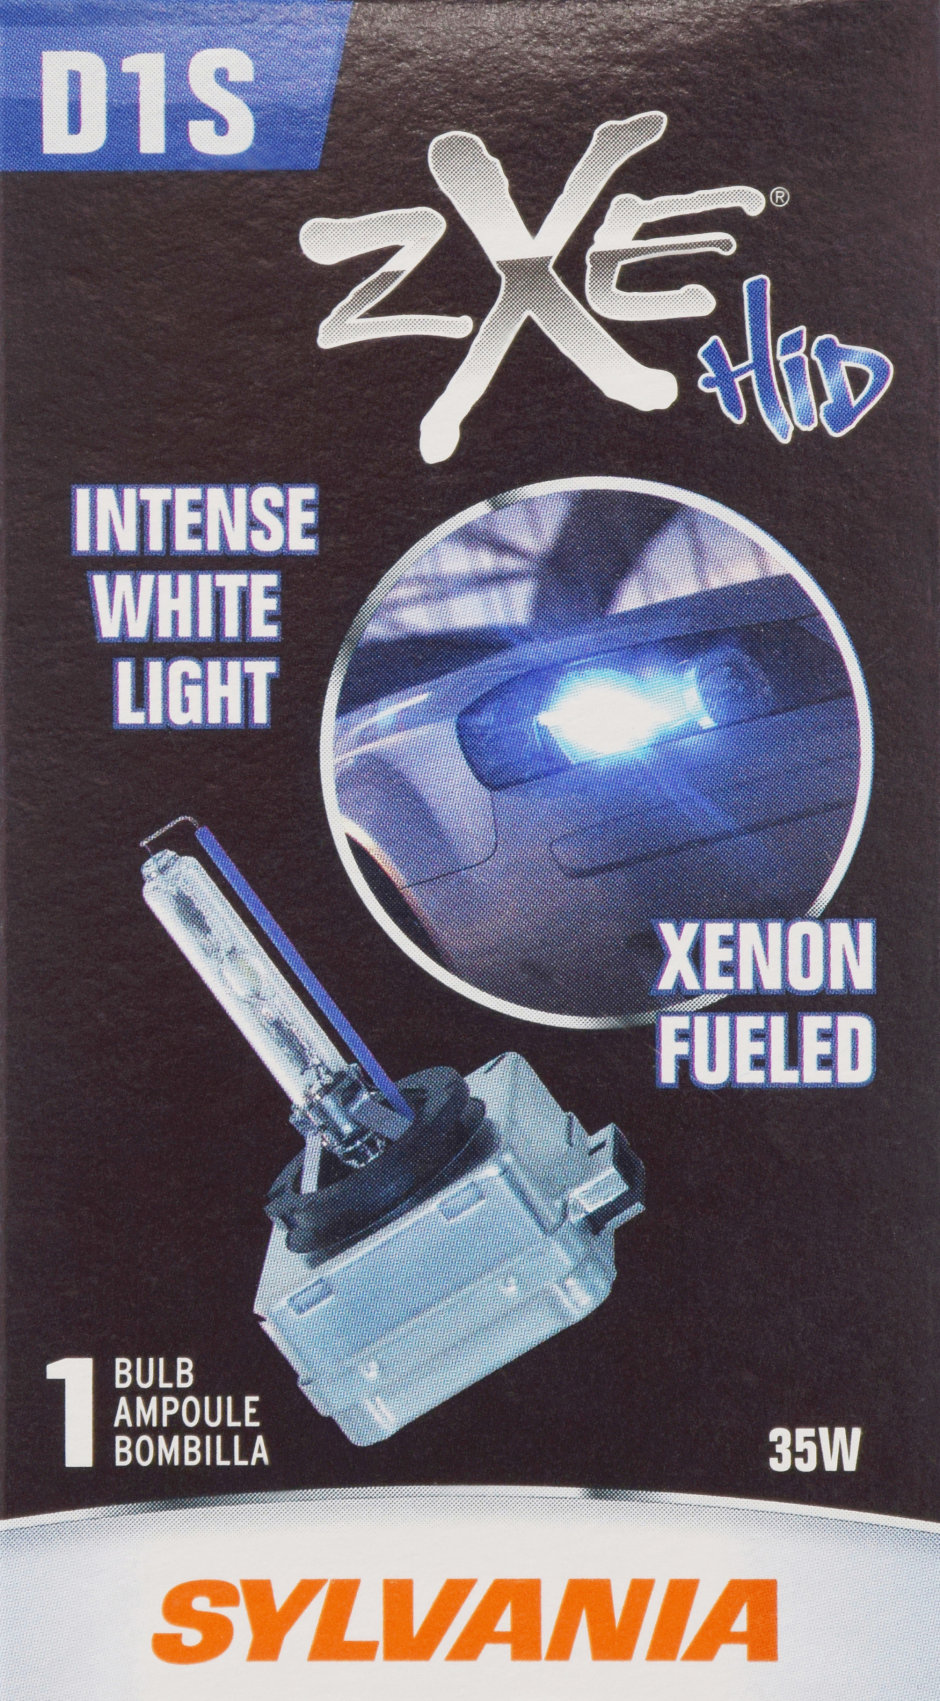 Whitest D1S Headlight Bulb